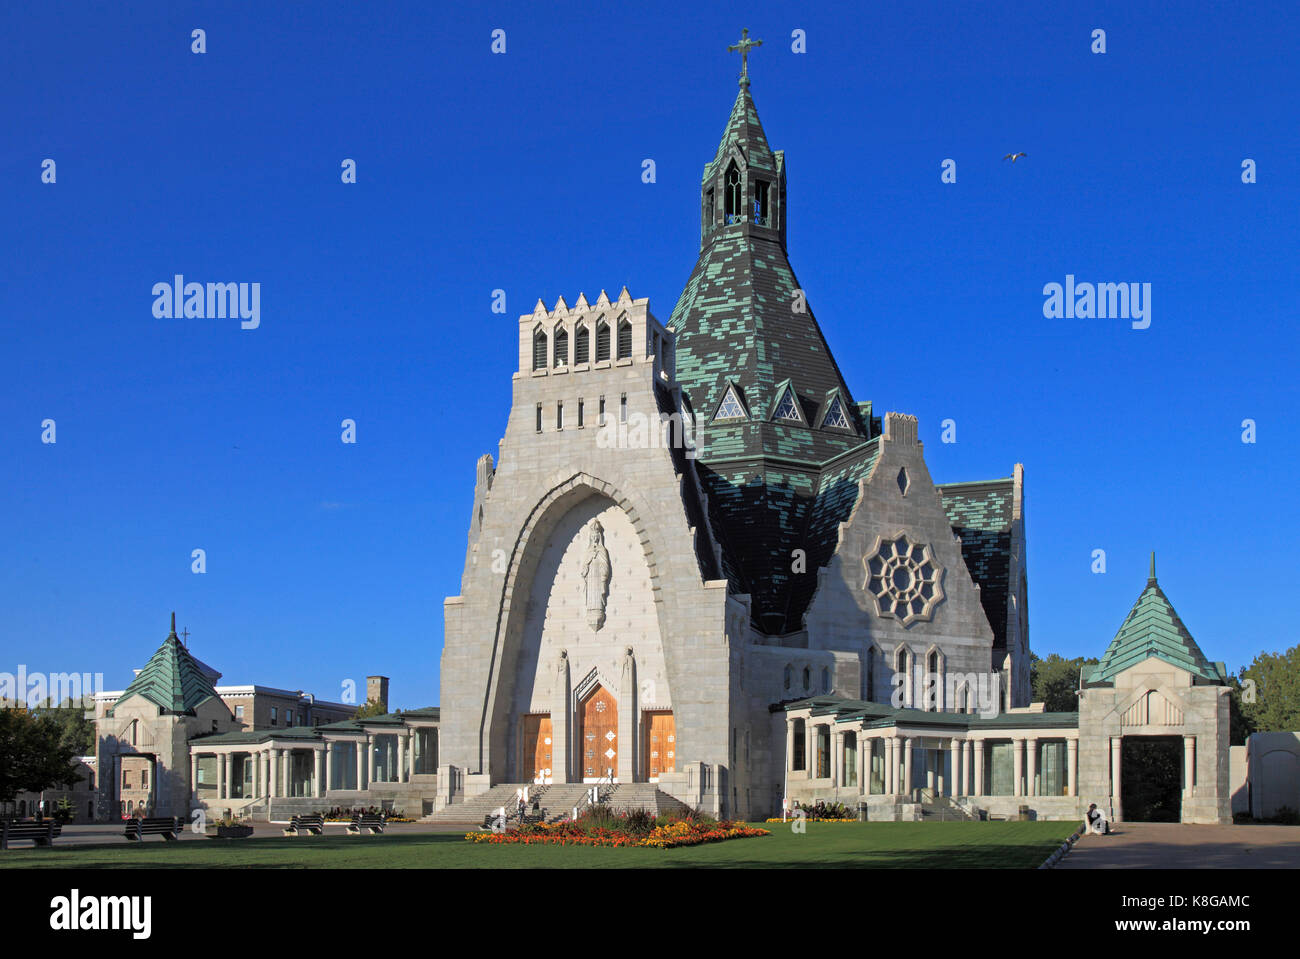 cap de la madeleine muslim Current local time in cap-de-la-madeleine - check correct time in cap-de-la-madeleine, quebec, canada, summer/winter time, standard offset to gmt and time conversion dates for daylight savings time 2018.